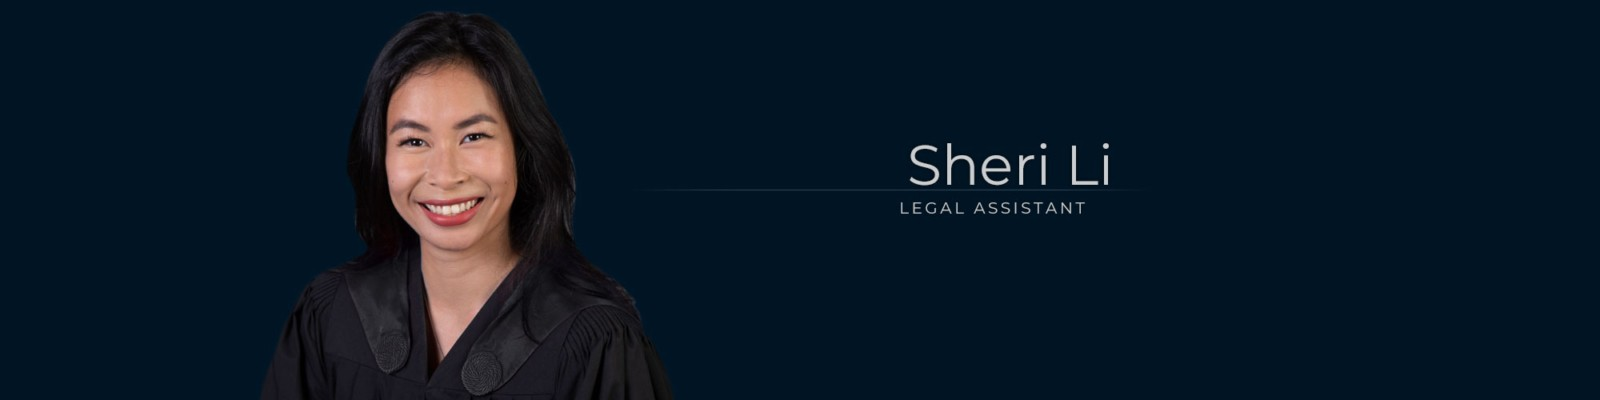 Sheri Li – Legal Assistant at Dominion GovLaw LLP